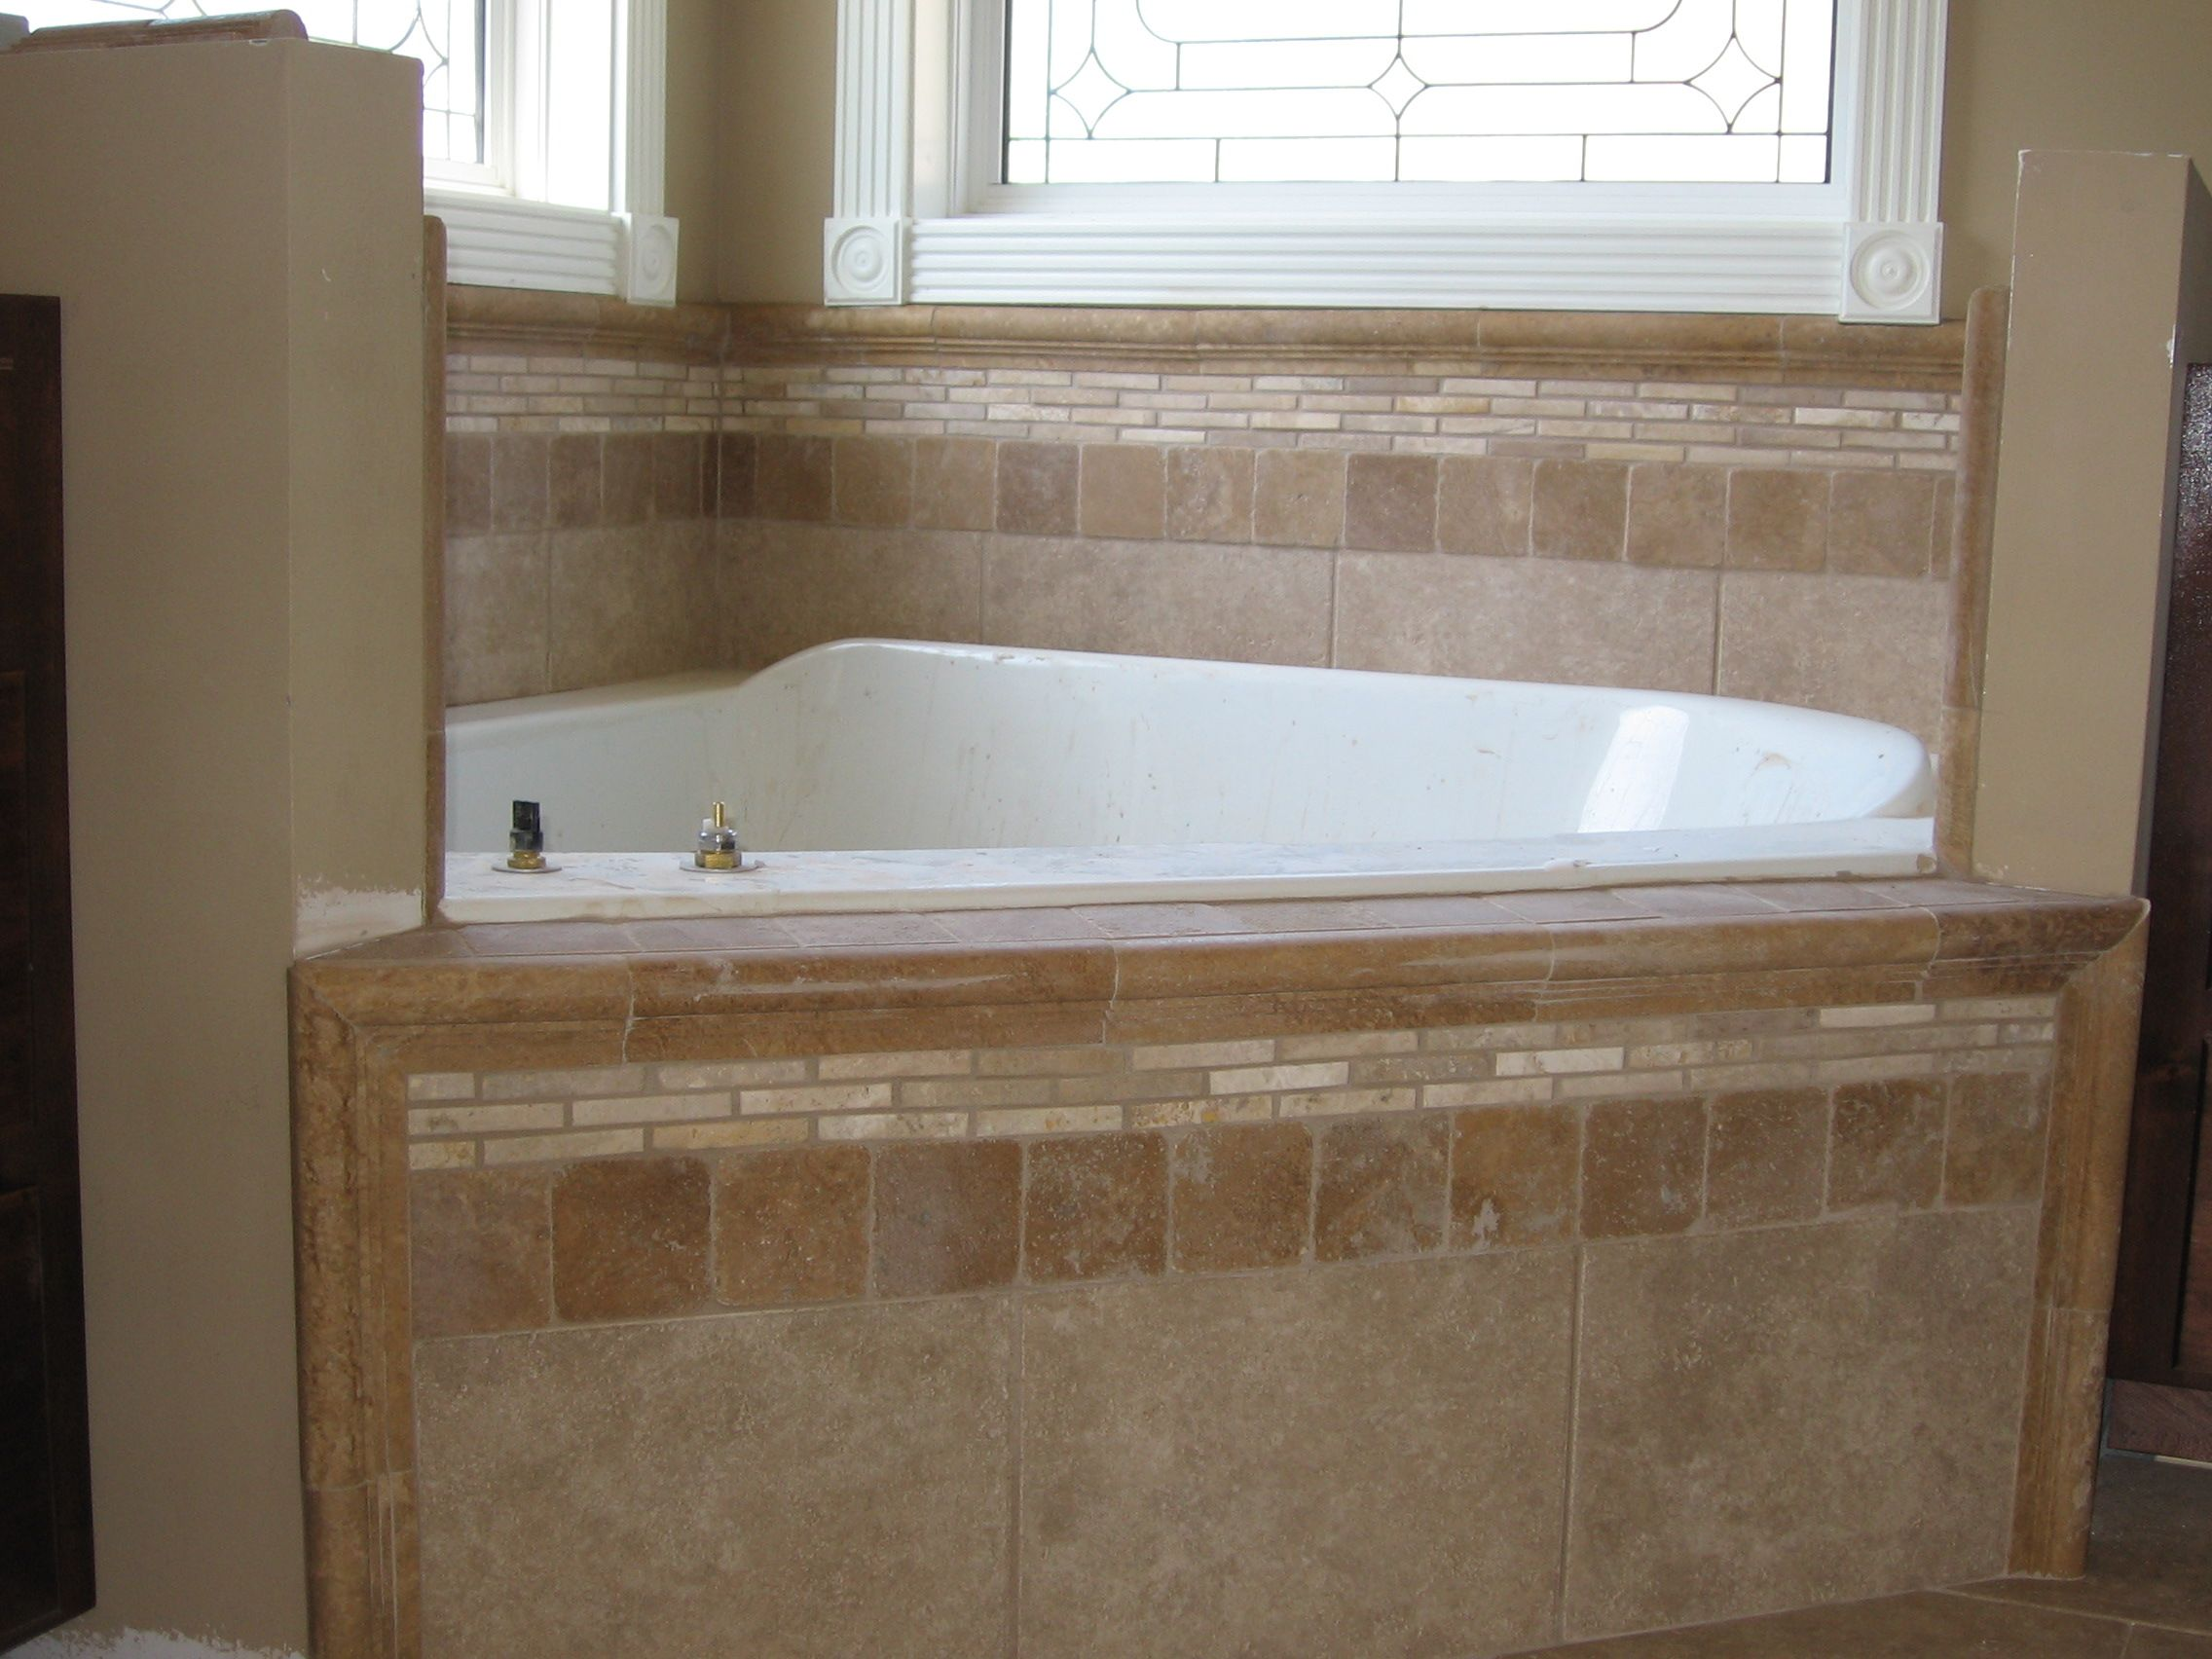 Soakertub Backsplash  Custom Tile Work On A Master Garden Tub In New Construction